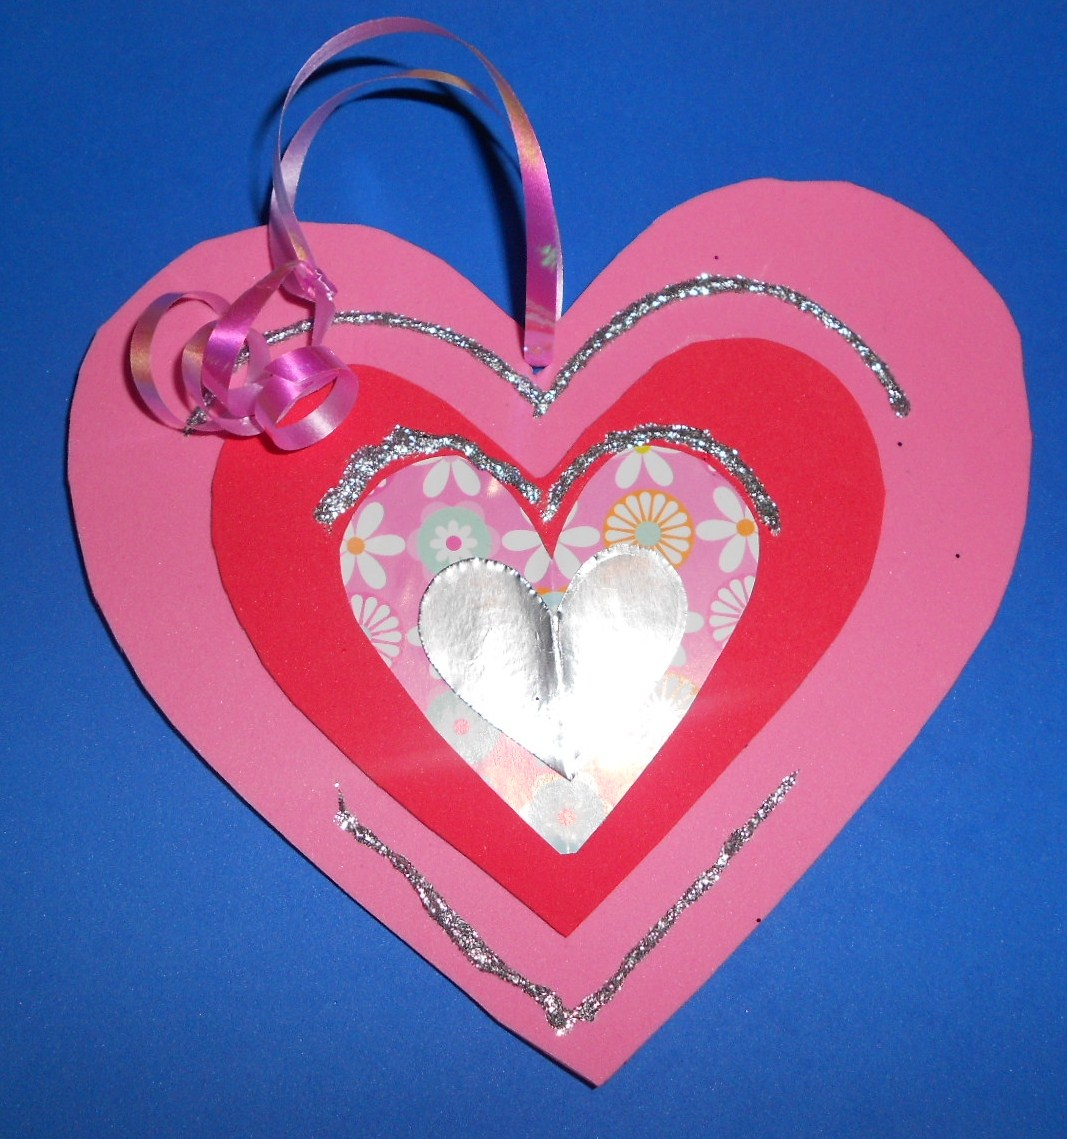 James Amp May Arts And Crafts Blog Love Heart Crafts For Children